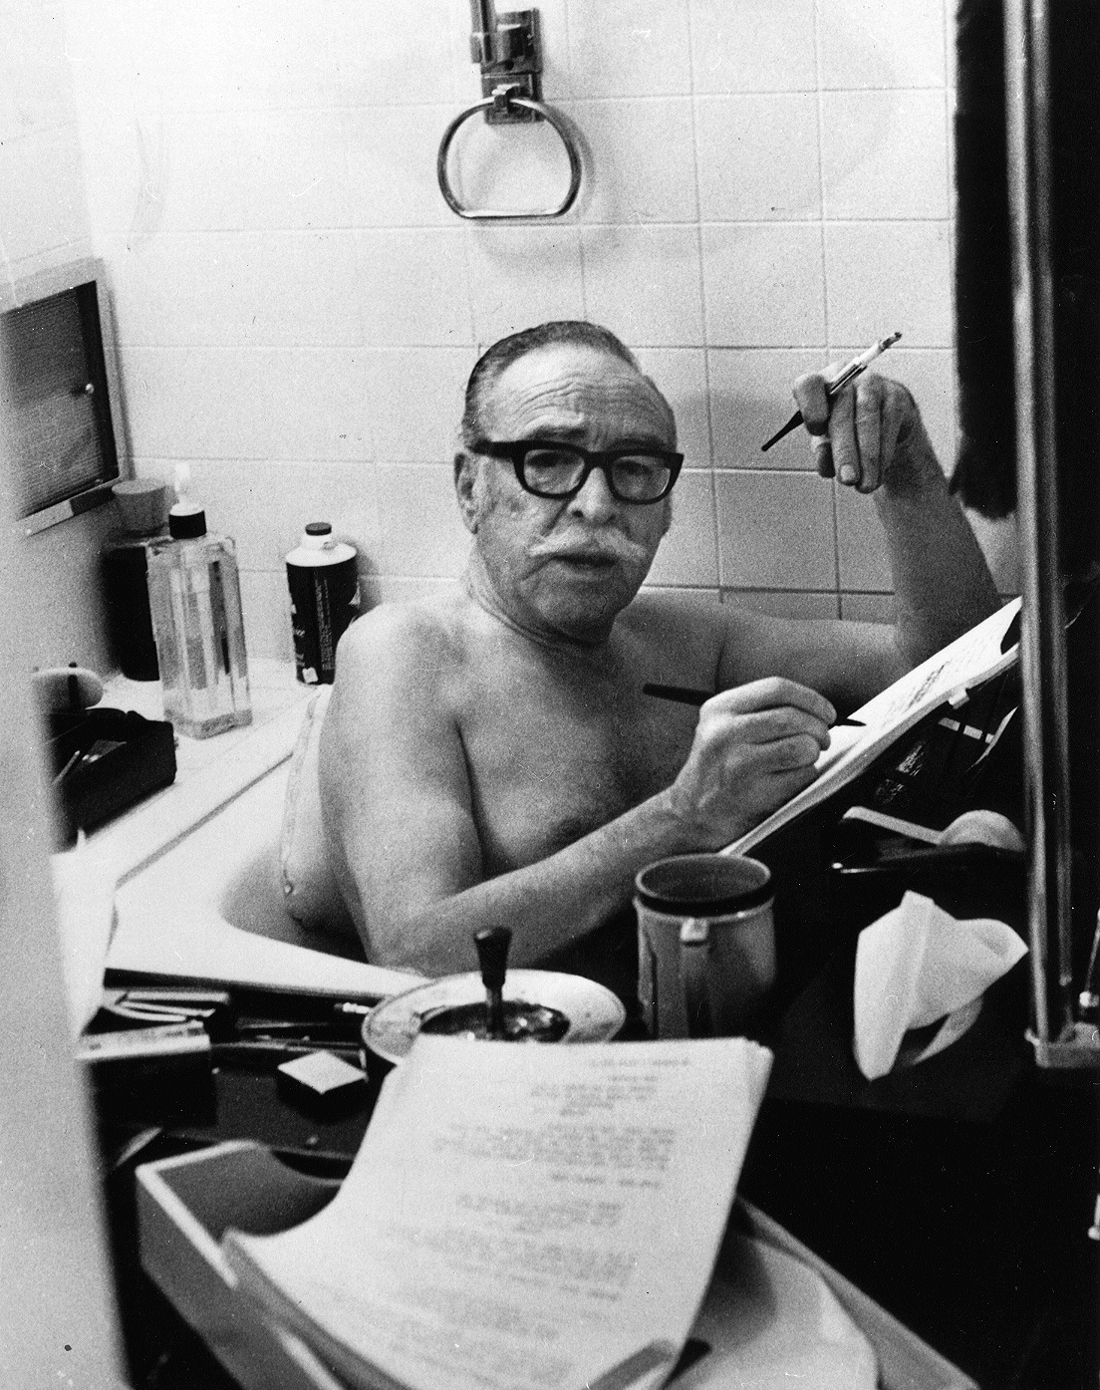 Cryptomnesia: The Physical Writing Process: Dalton Trumbo - Writing in the  Bathtub & the Duality of Screenwriter-Novelist